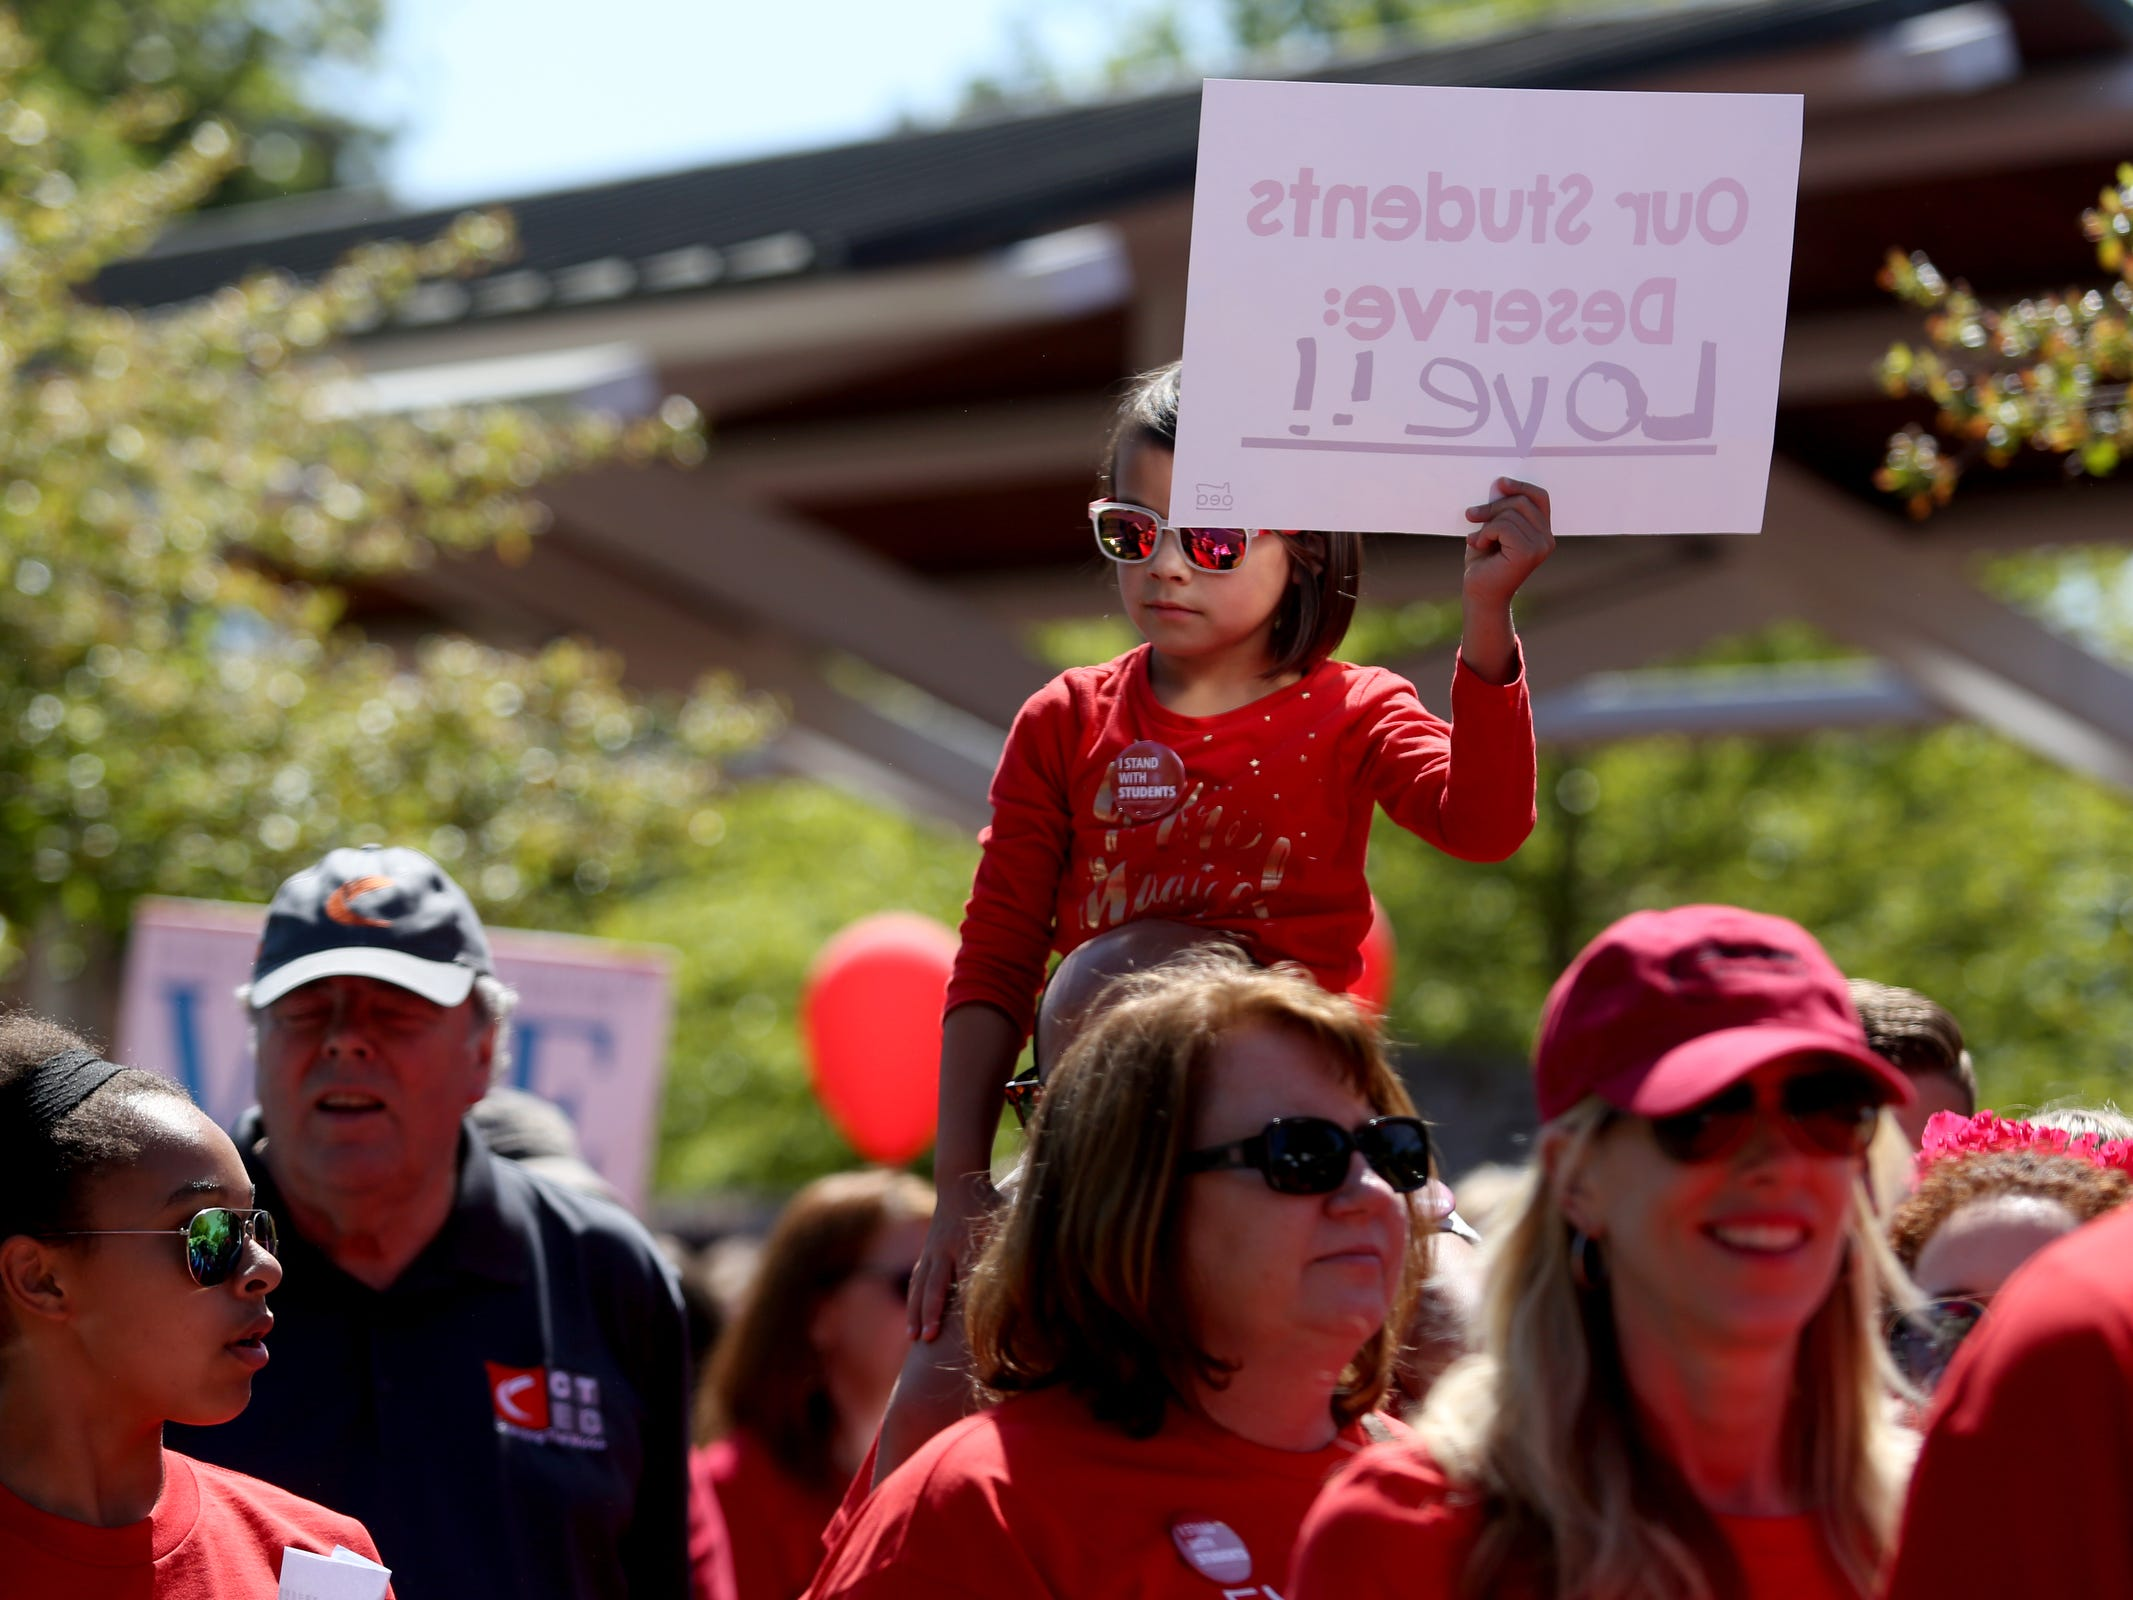 Marley Sonis, 7, of Salem, gets a view from above as thousands of teachers and education activists march from Riverfront Park to the Oregon State Capitol for a day of action in Salem on May 8, 2019. Schools across Oregon closed early or were closed for the day as teachers walked out to demand more school funding to address large class sizes, low graduation rates and other concerns.